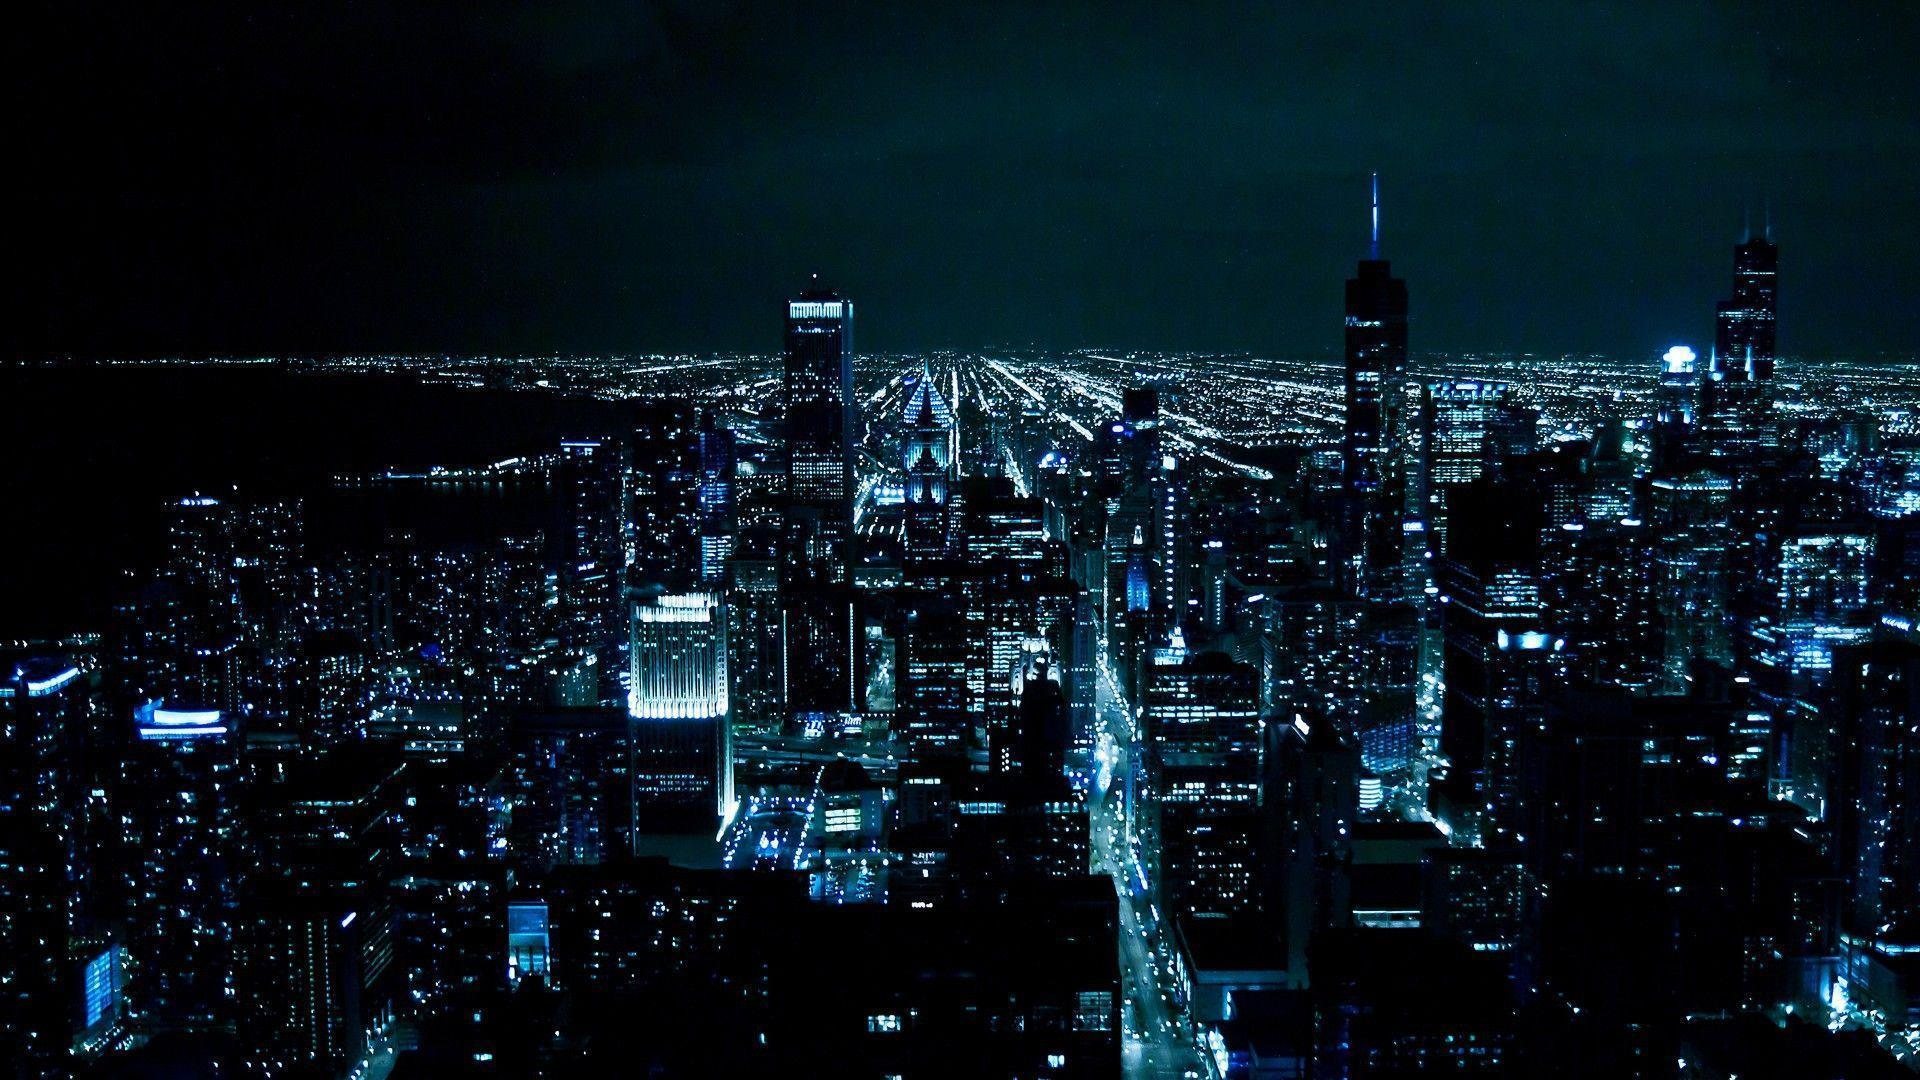 Night City Wallpapers